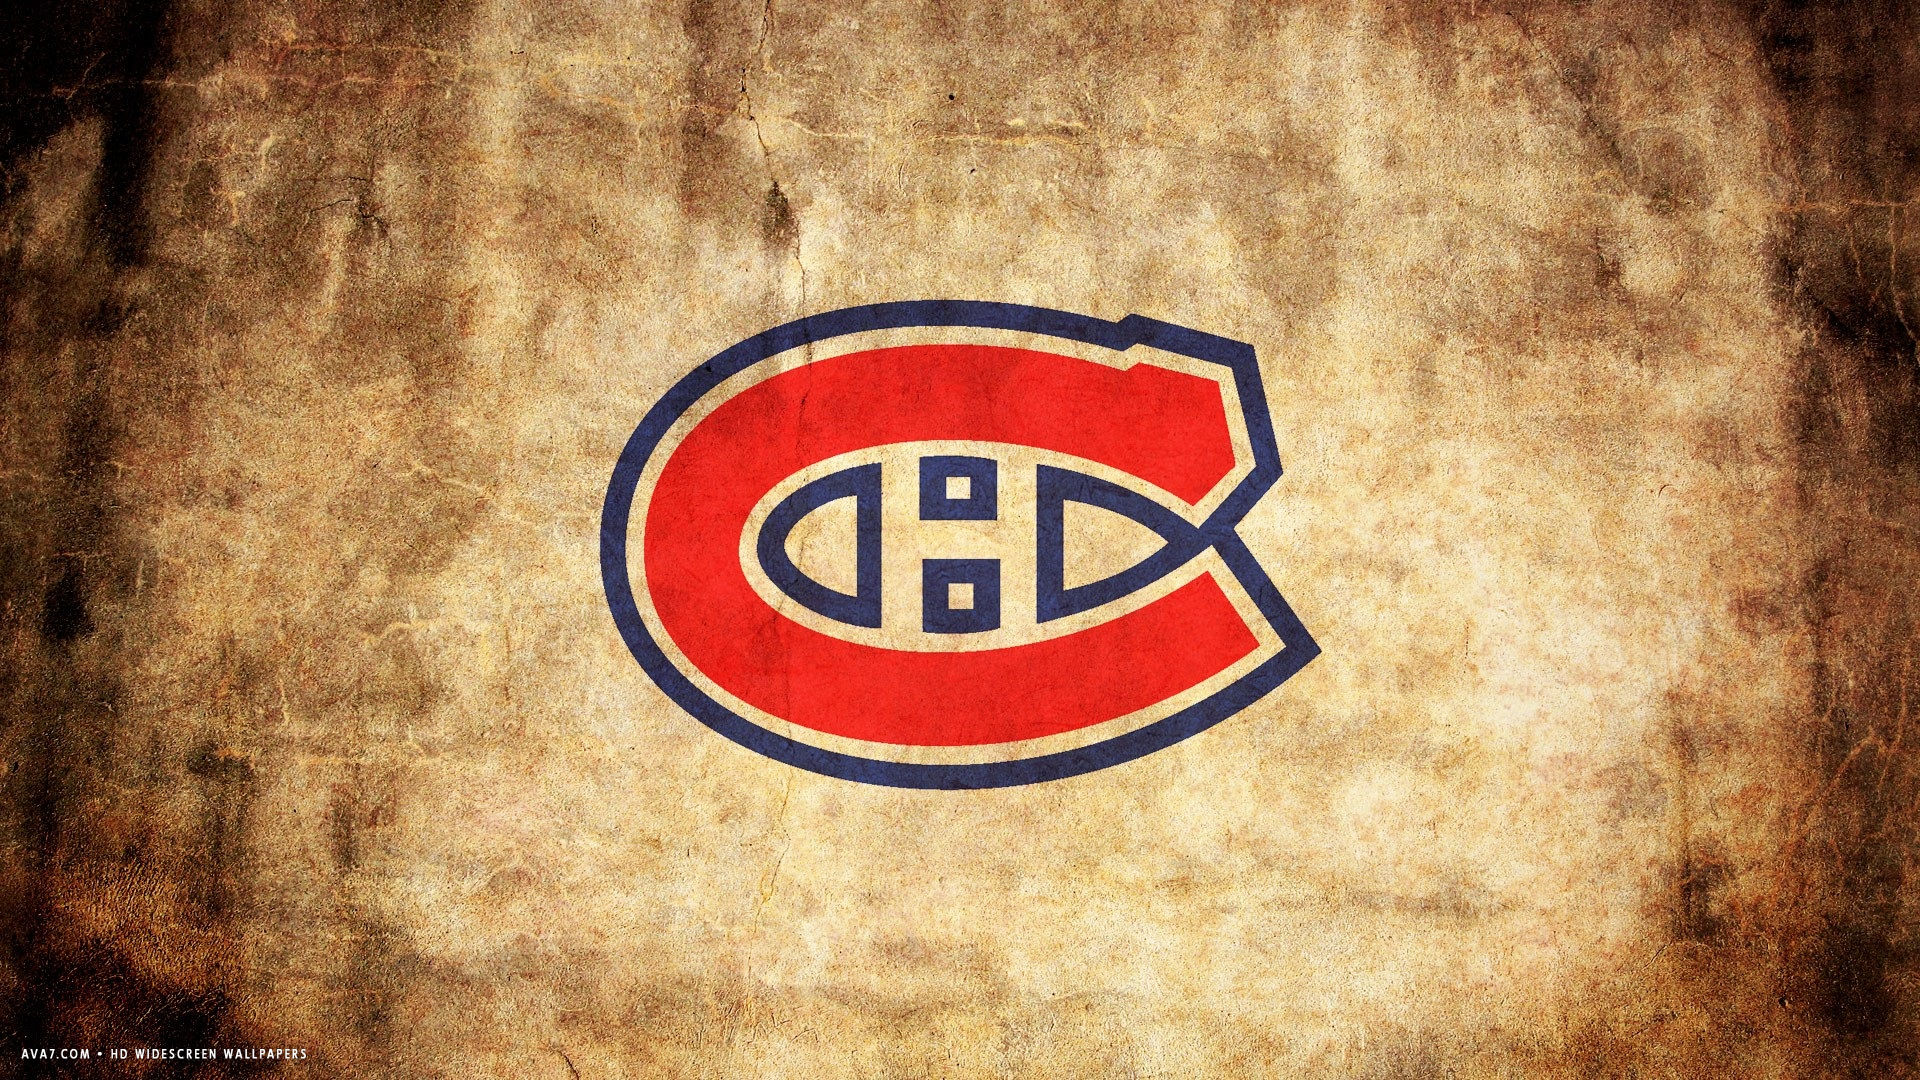 Simple Wallpaper Logo Montreal Canadiens - montreal-canadiens-nfl-hockey-team  Graphic_194999.jpg